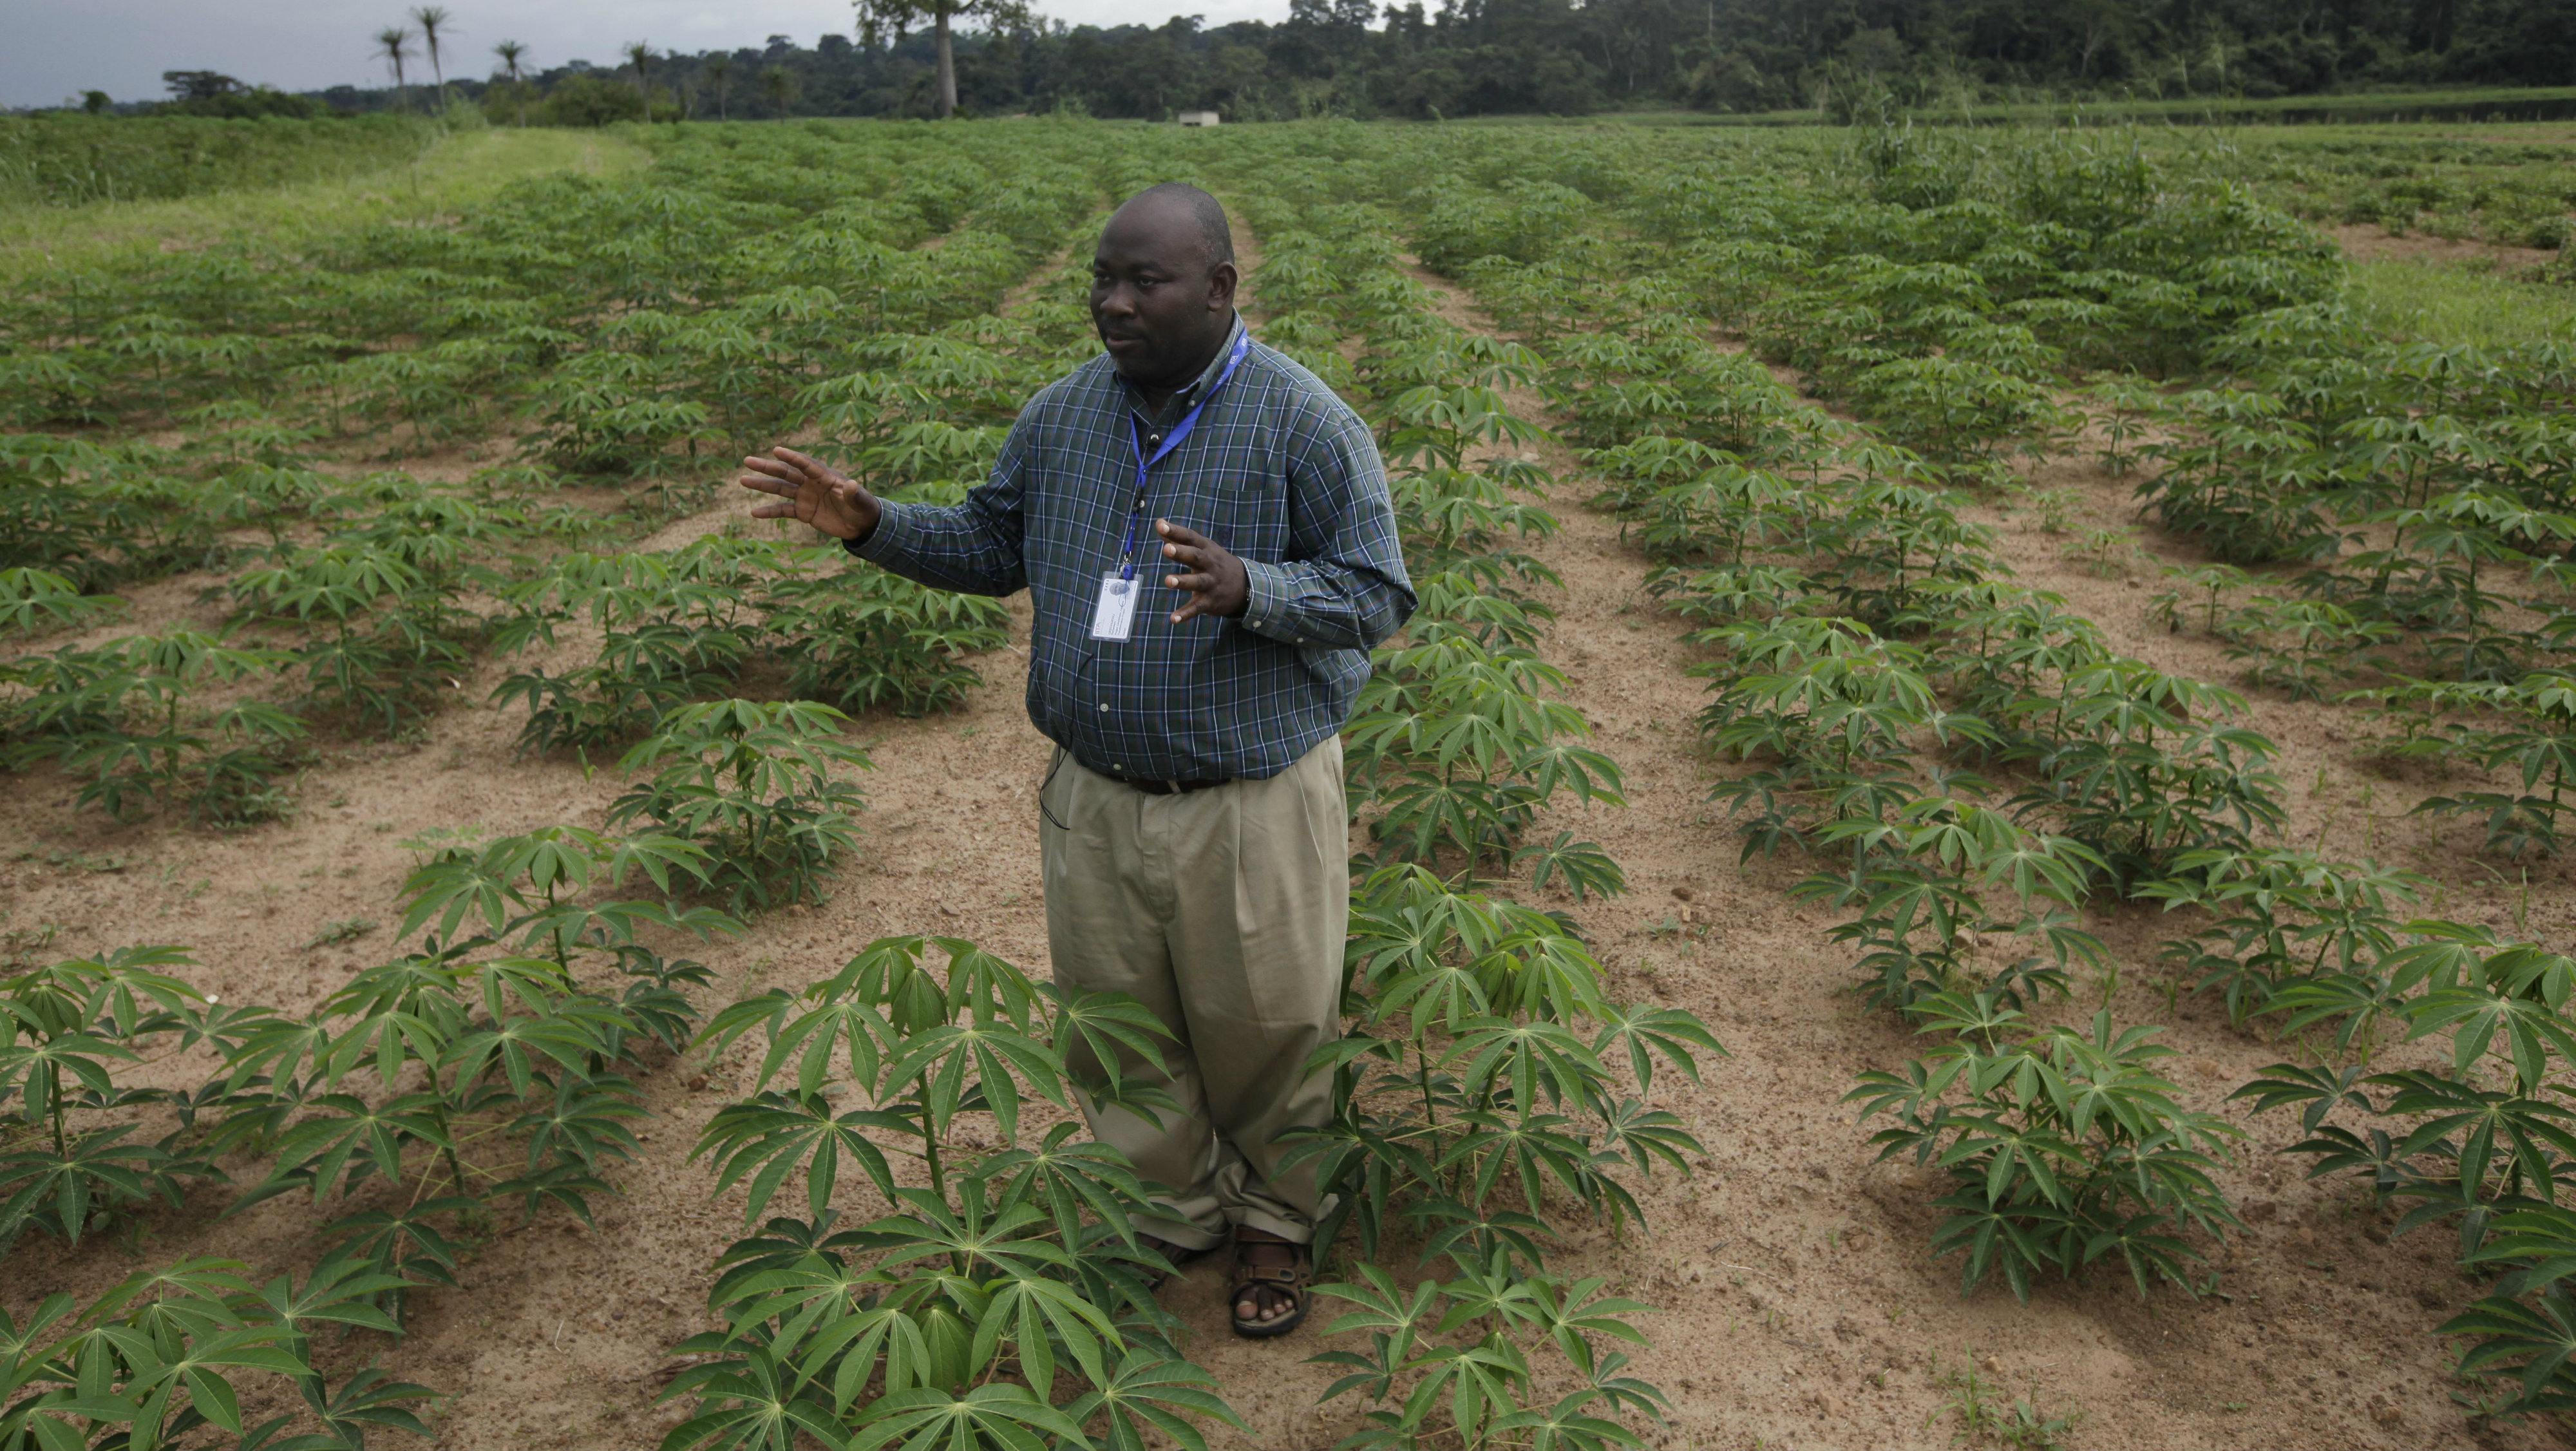 """In this photo taken Tuesday, Oct. 2, 2012. Richardson Okechukwu, a scientist who study cassava speaks to Associated Press in a Cassava farm , """" Come war, Come anything, the farmer who has cassava has food"""" at the International Institutes For Tropical Agriculture, in Ibadan, Nigeria. From this field nestled among the lush rolling hills of Nigeria's southwest, the small plants rising out the hard red dirt appear fragile, easily crushed by weather or chance. Looks, however, are deceiving. These cassava plants will grow into a dense thicket of hard, bamboo-like shoots within a year, with roots so massive a single planted hectare can provide three tons of food. The plants survive fires, droughts and pestilence, while offering a vital food source for more than 500 million people living across sub-Saharan Africa."""